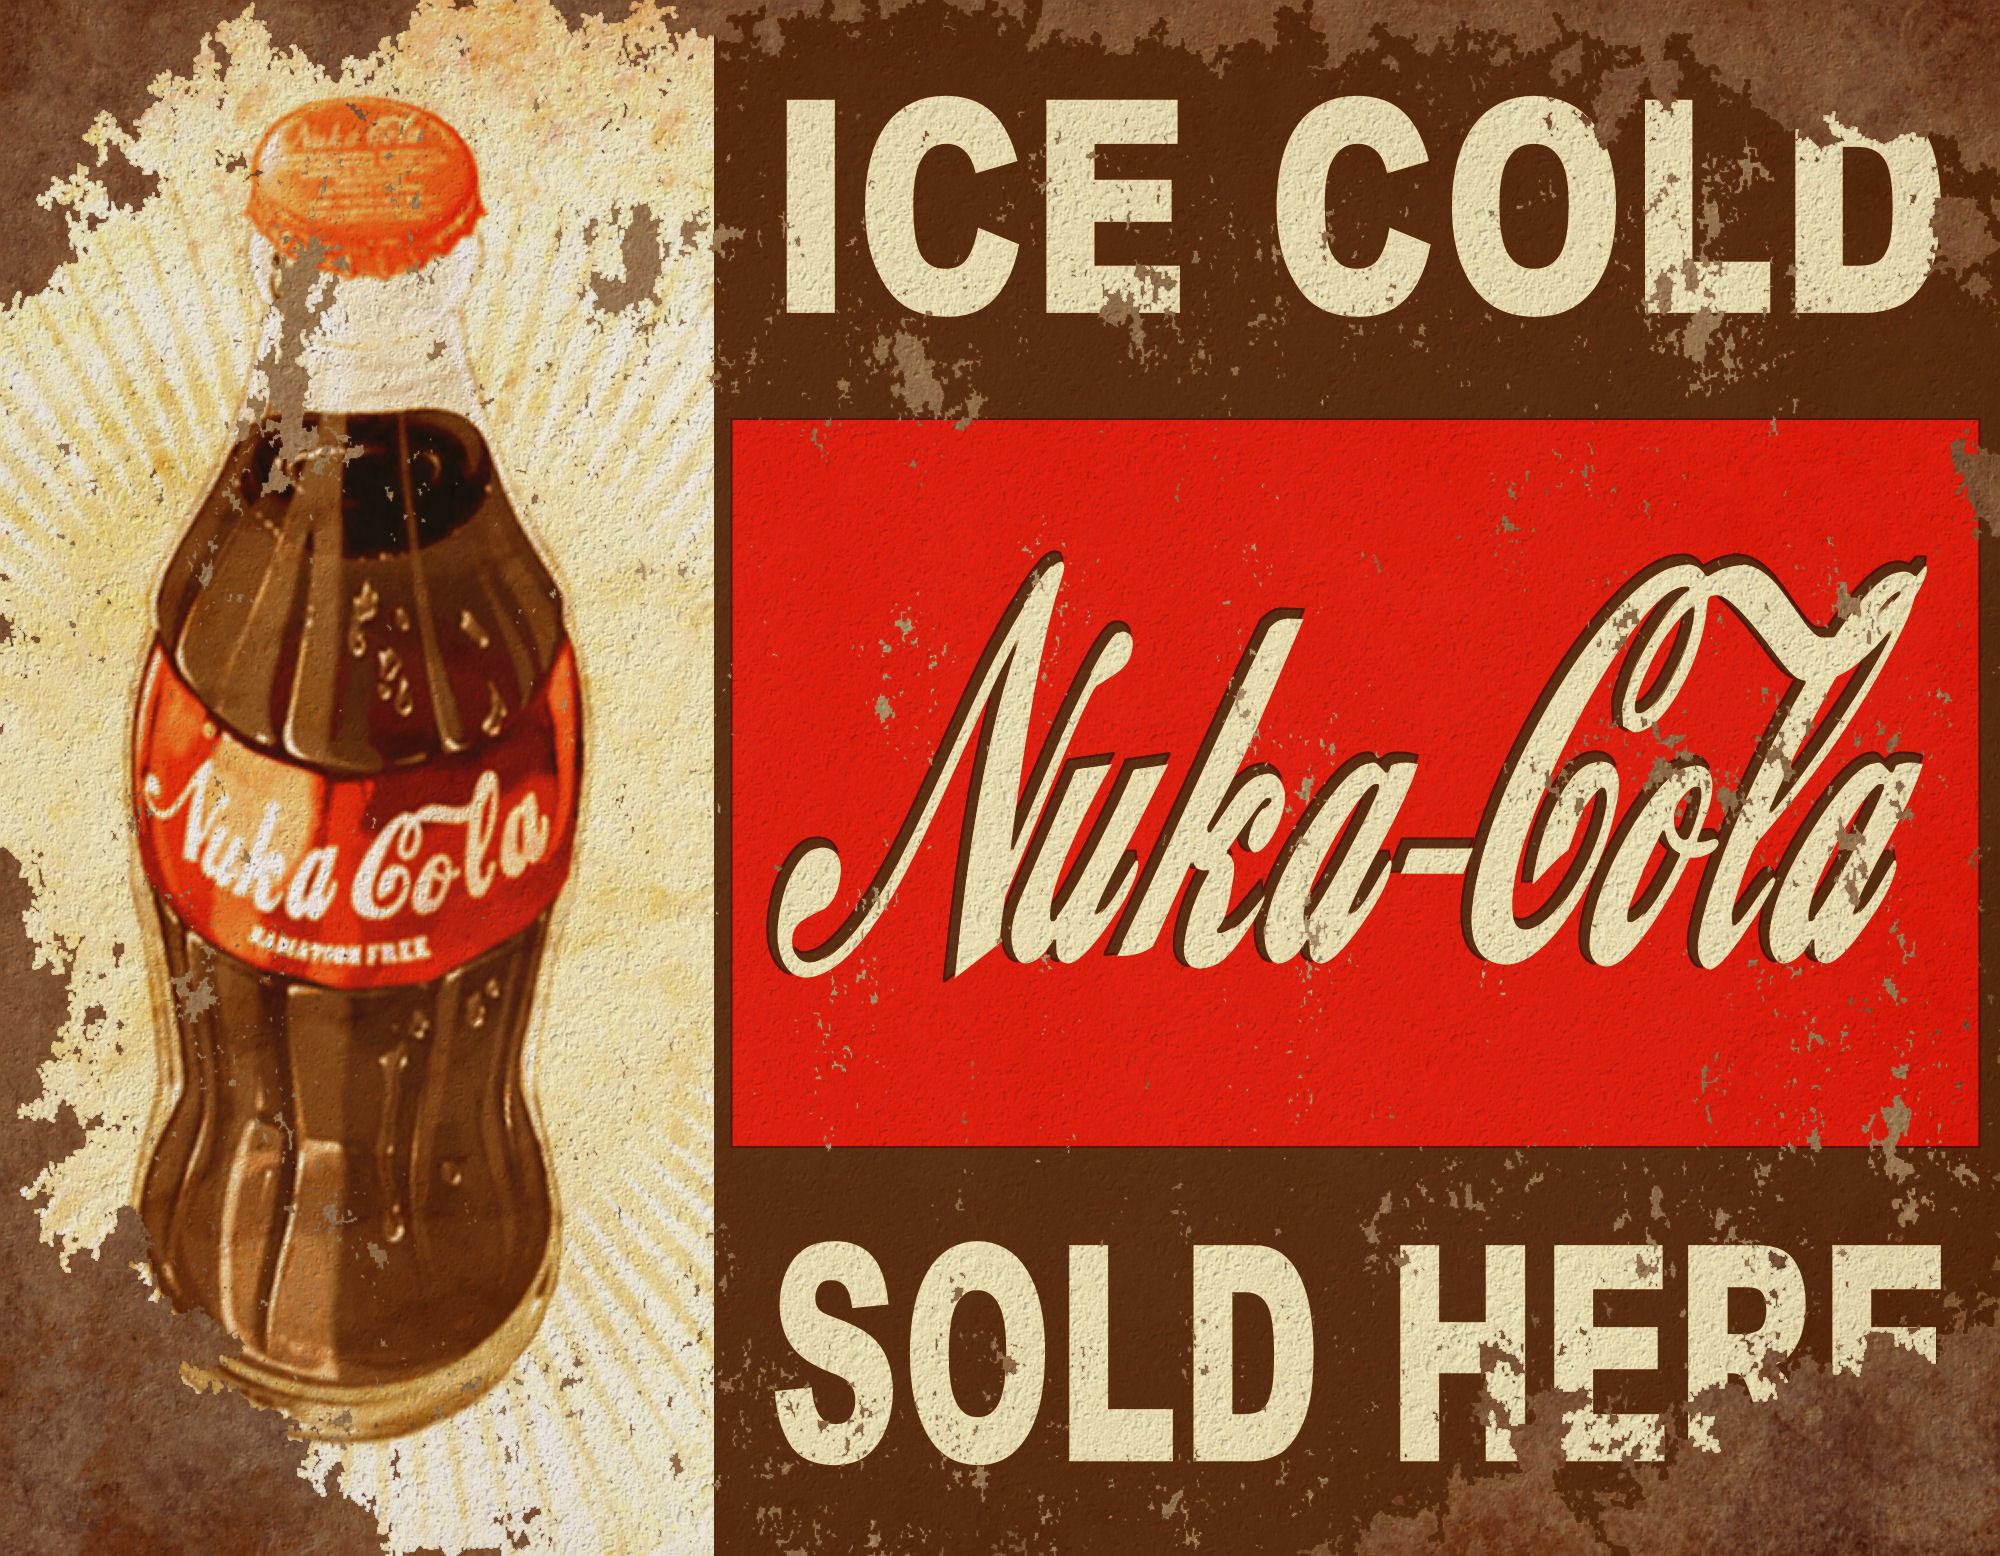 Res: 2000x1556, Computerspiele - Fallout Nuka Cola Wallpaper